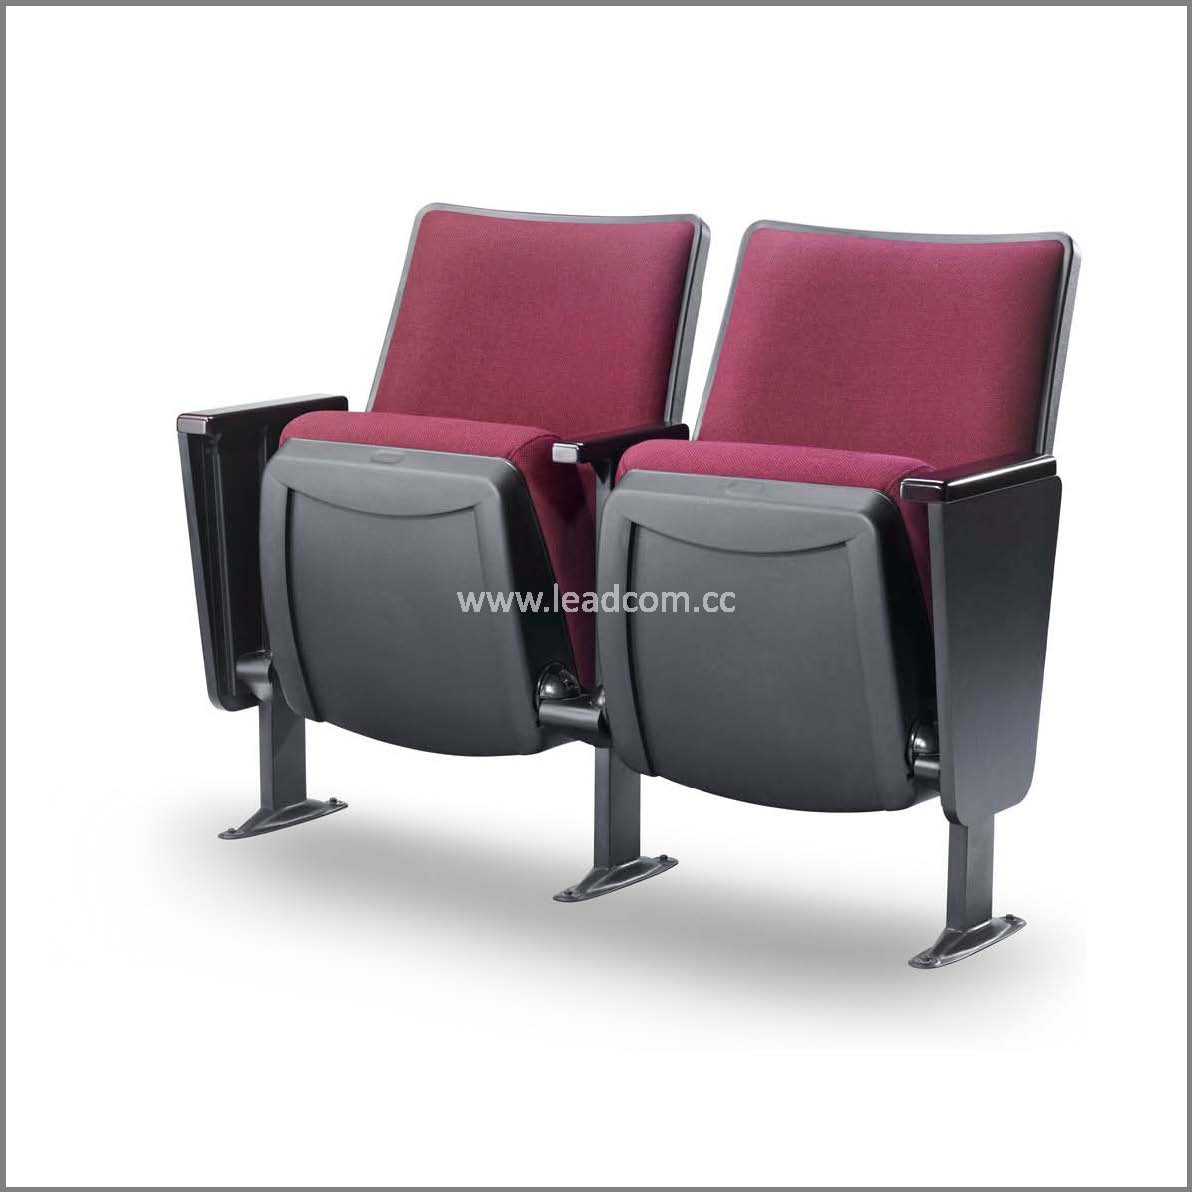 Leadcom Best Sale Church Furniture Chairs Manufacturer Ls 13601 Buy Church Furniture Chairs